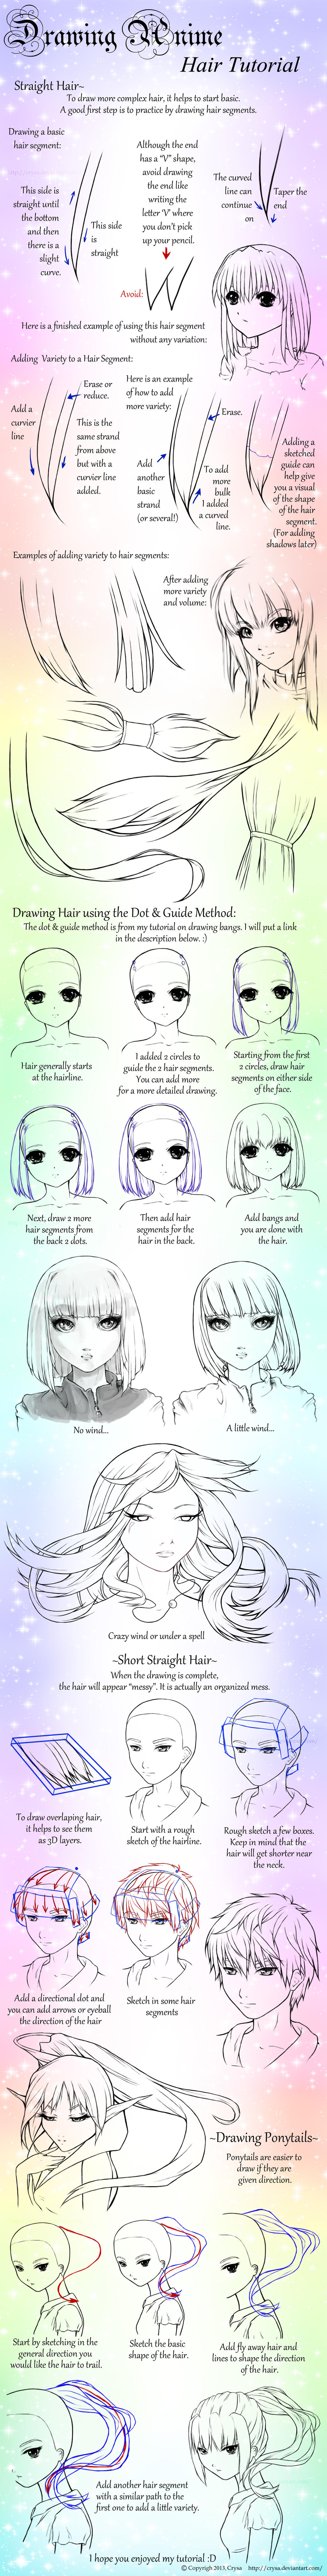 Drawing Anime: Straight Hair and Ponytails by Crysa